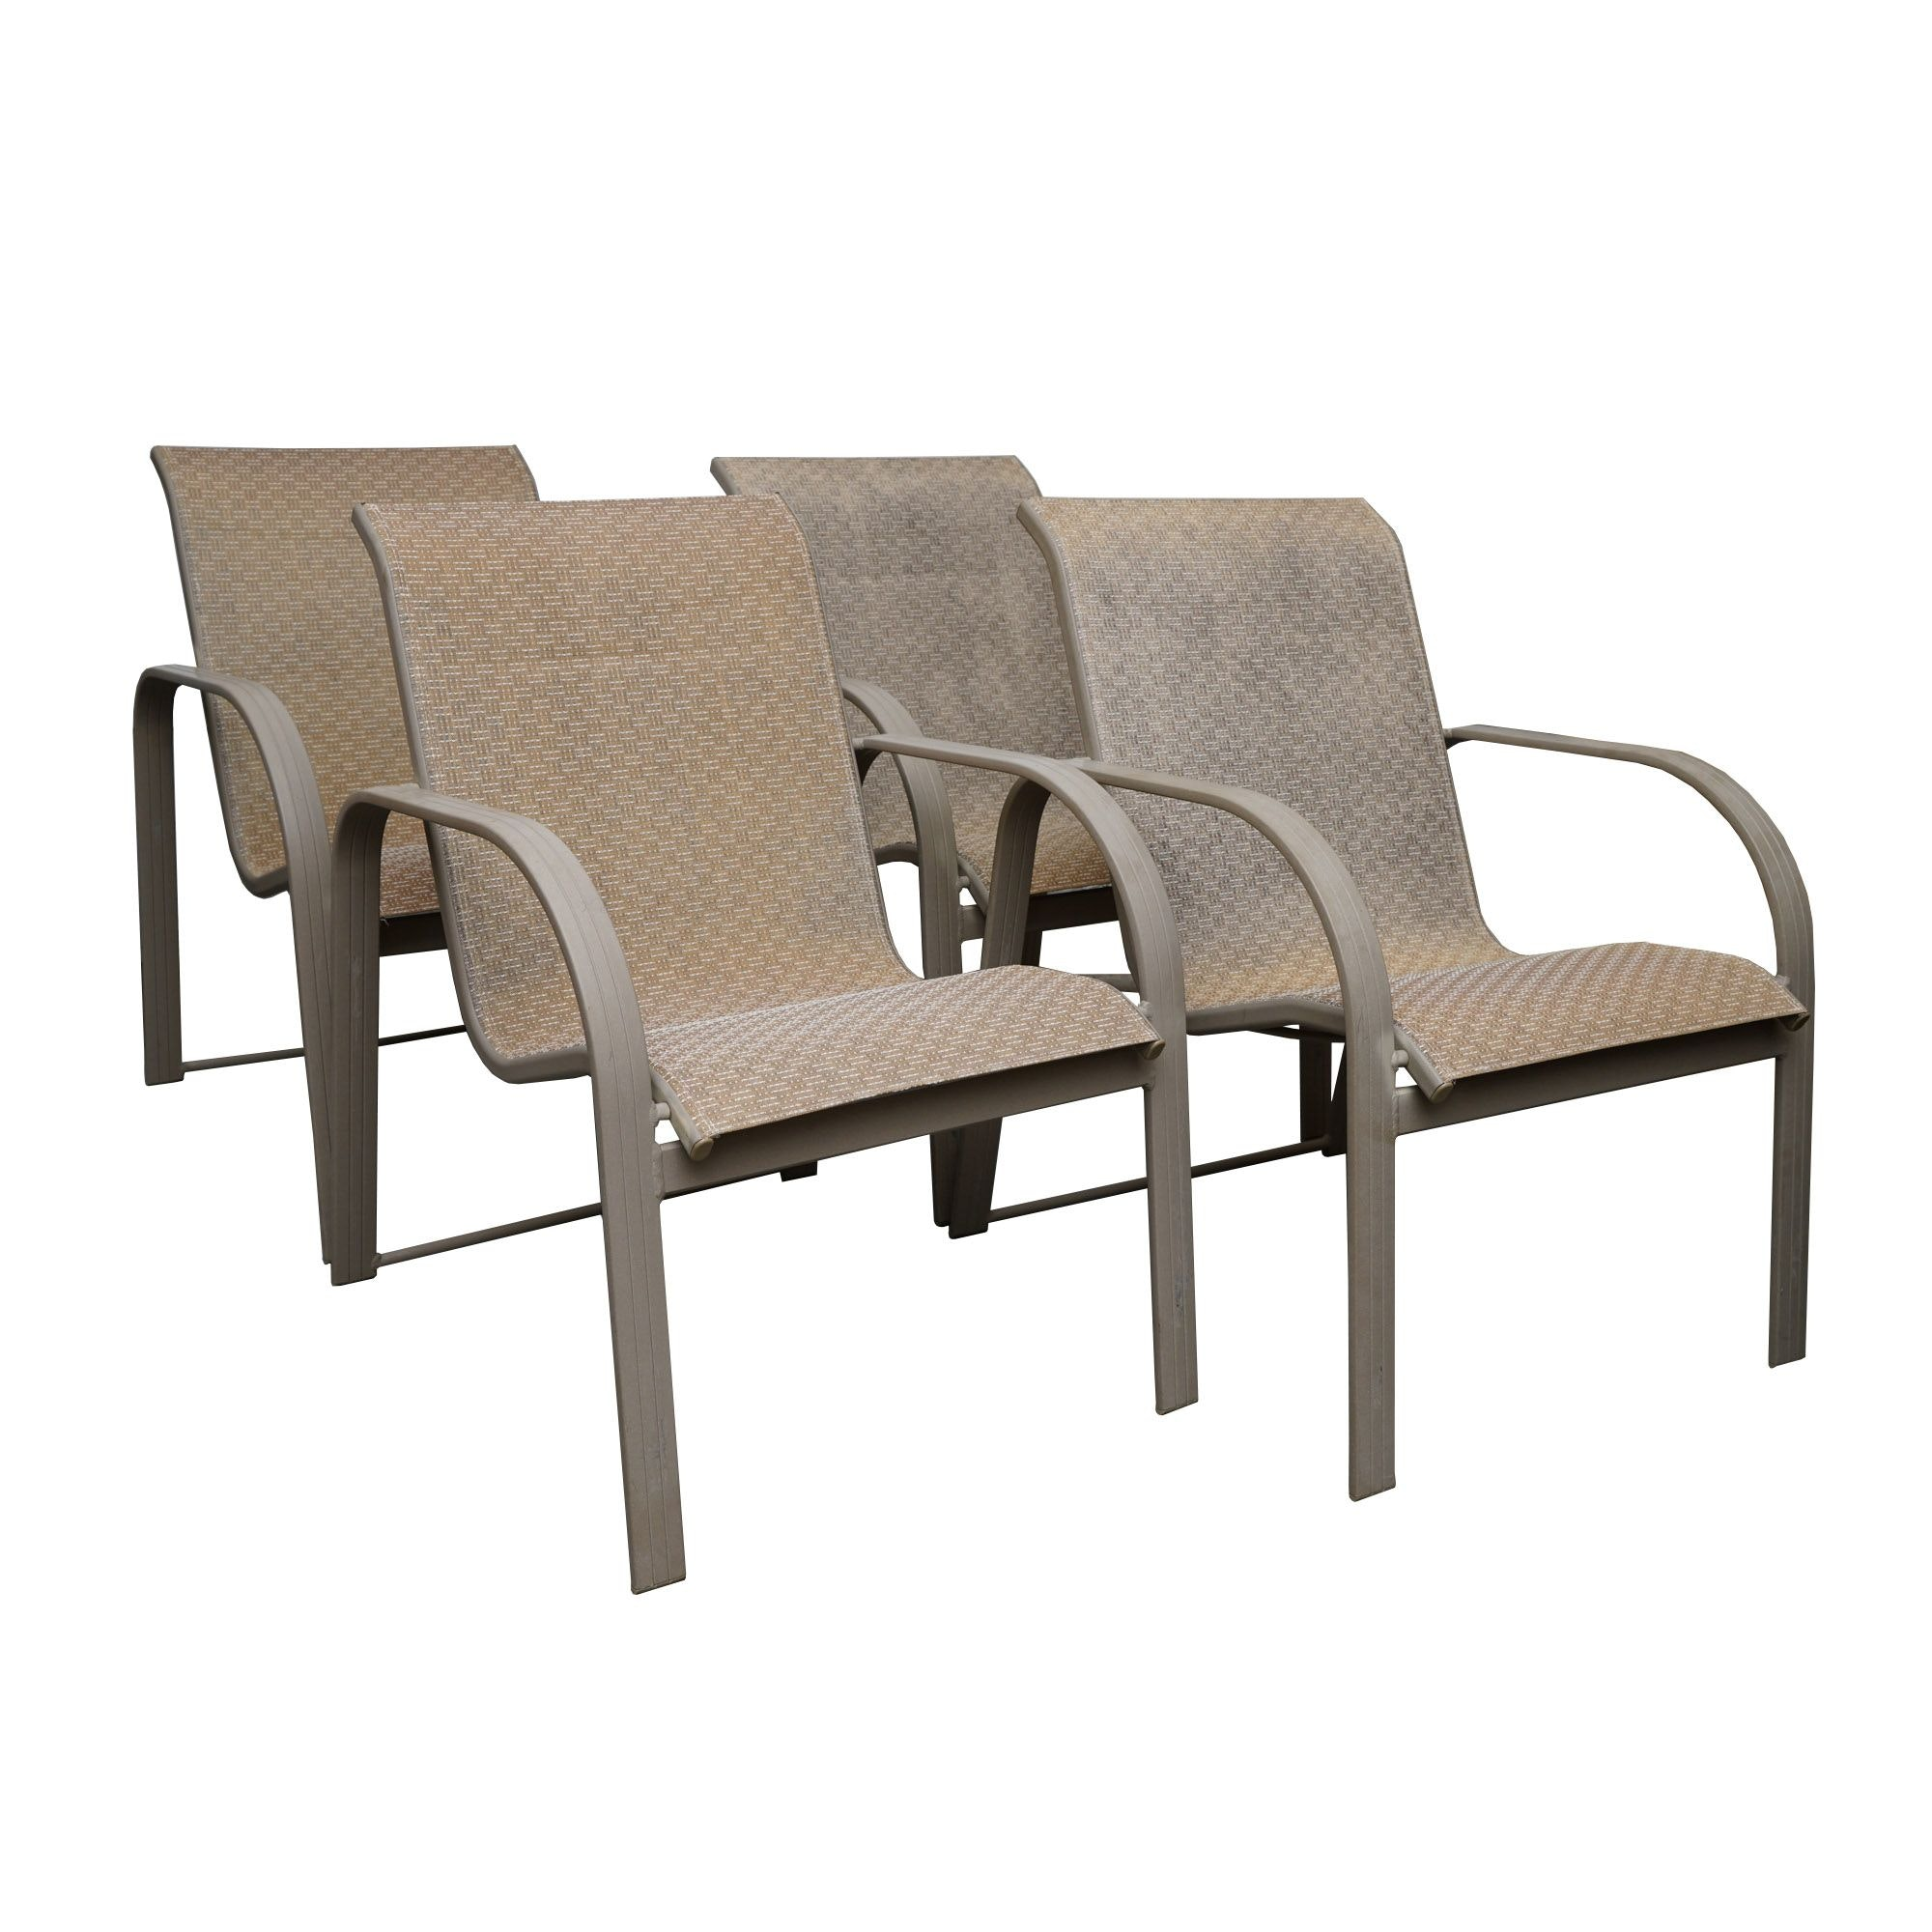 Woven Sling Seat Patio Chairs